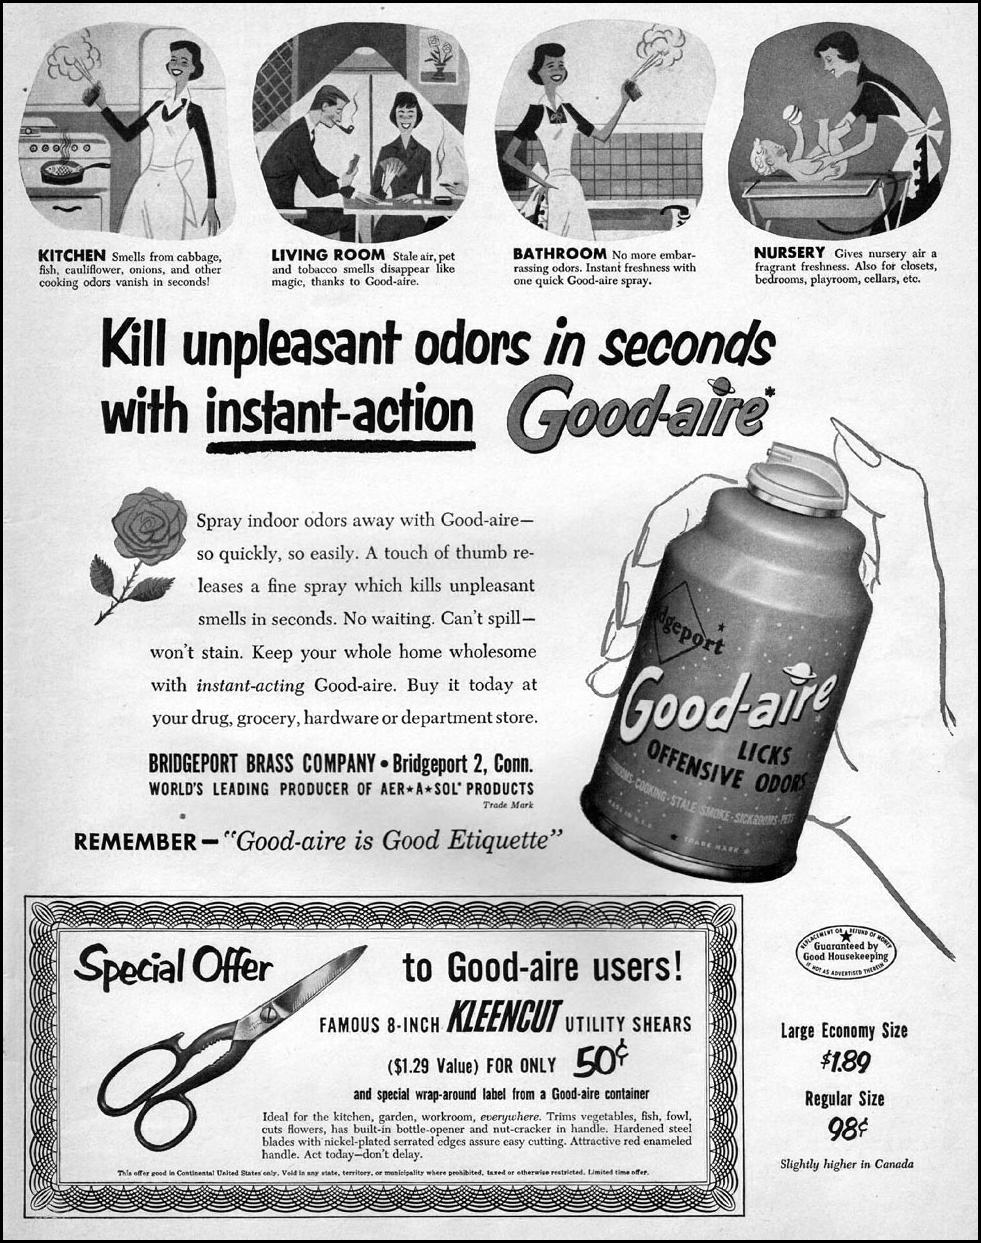 GOOD-AIRE AER-A-SOL KITCHEN DEODORIZER LIFE 10/01/1951 p. 109